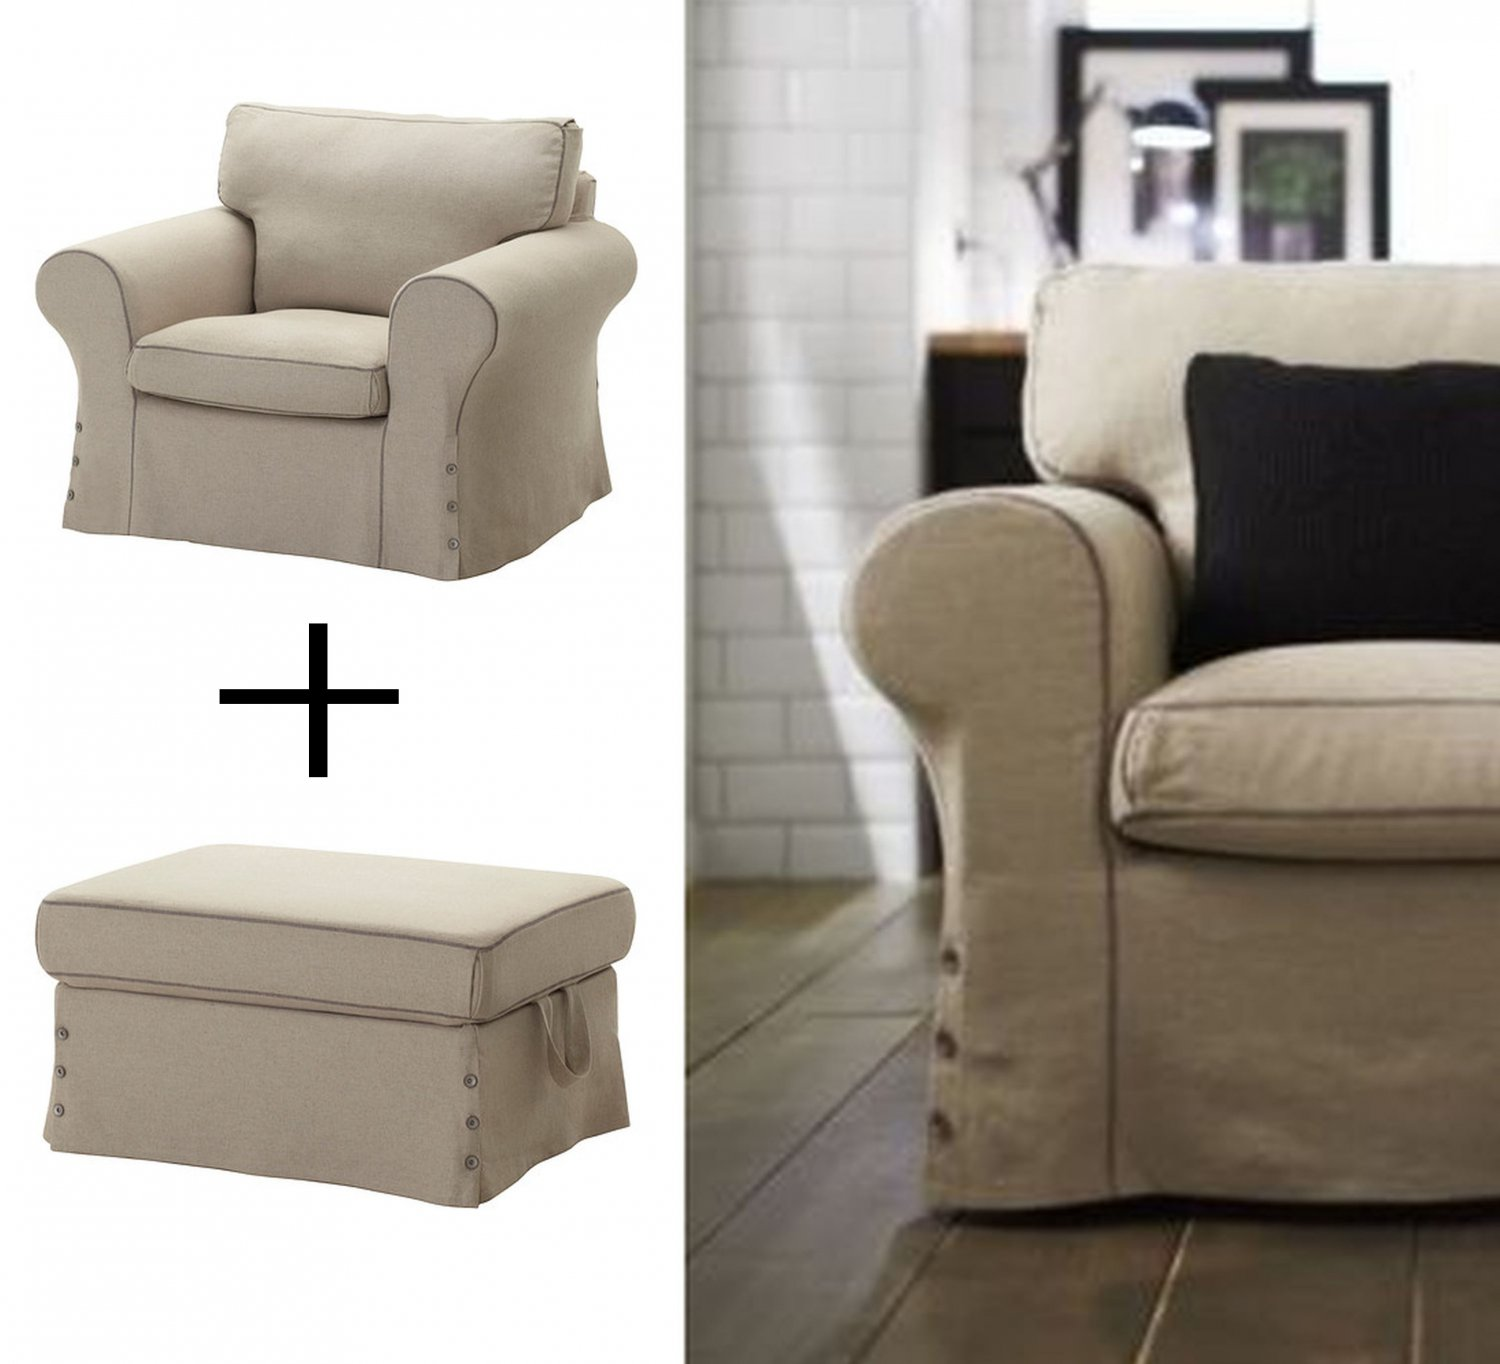 IKEA EKTORP Armchair and Footstool Ottoman COVERS Chair Slipcovers  RISANE NATURAL Linen Blend Beige